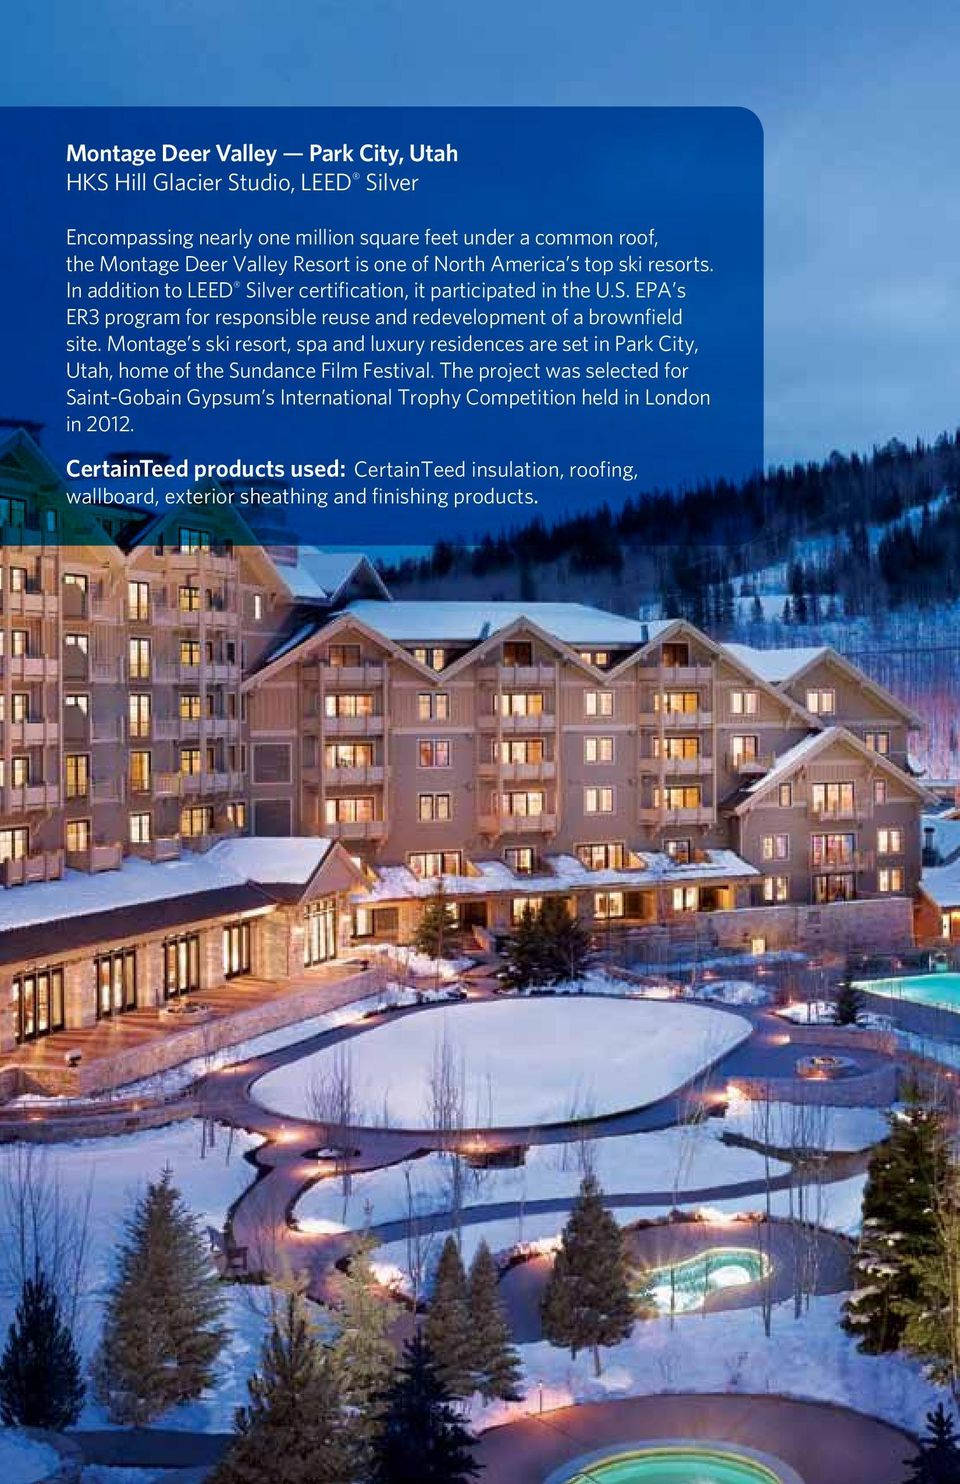 Montage s ski resort, spa and luxury residences are set in Park City, Utah, home of the Sundance Film Festival.